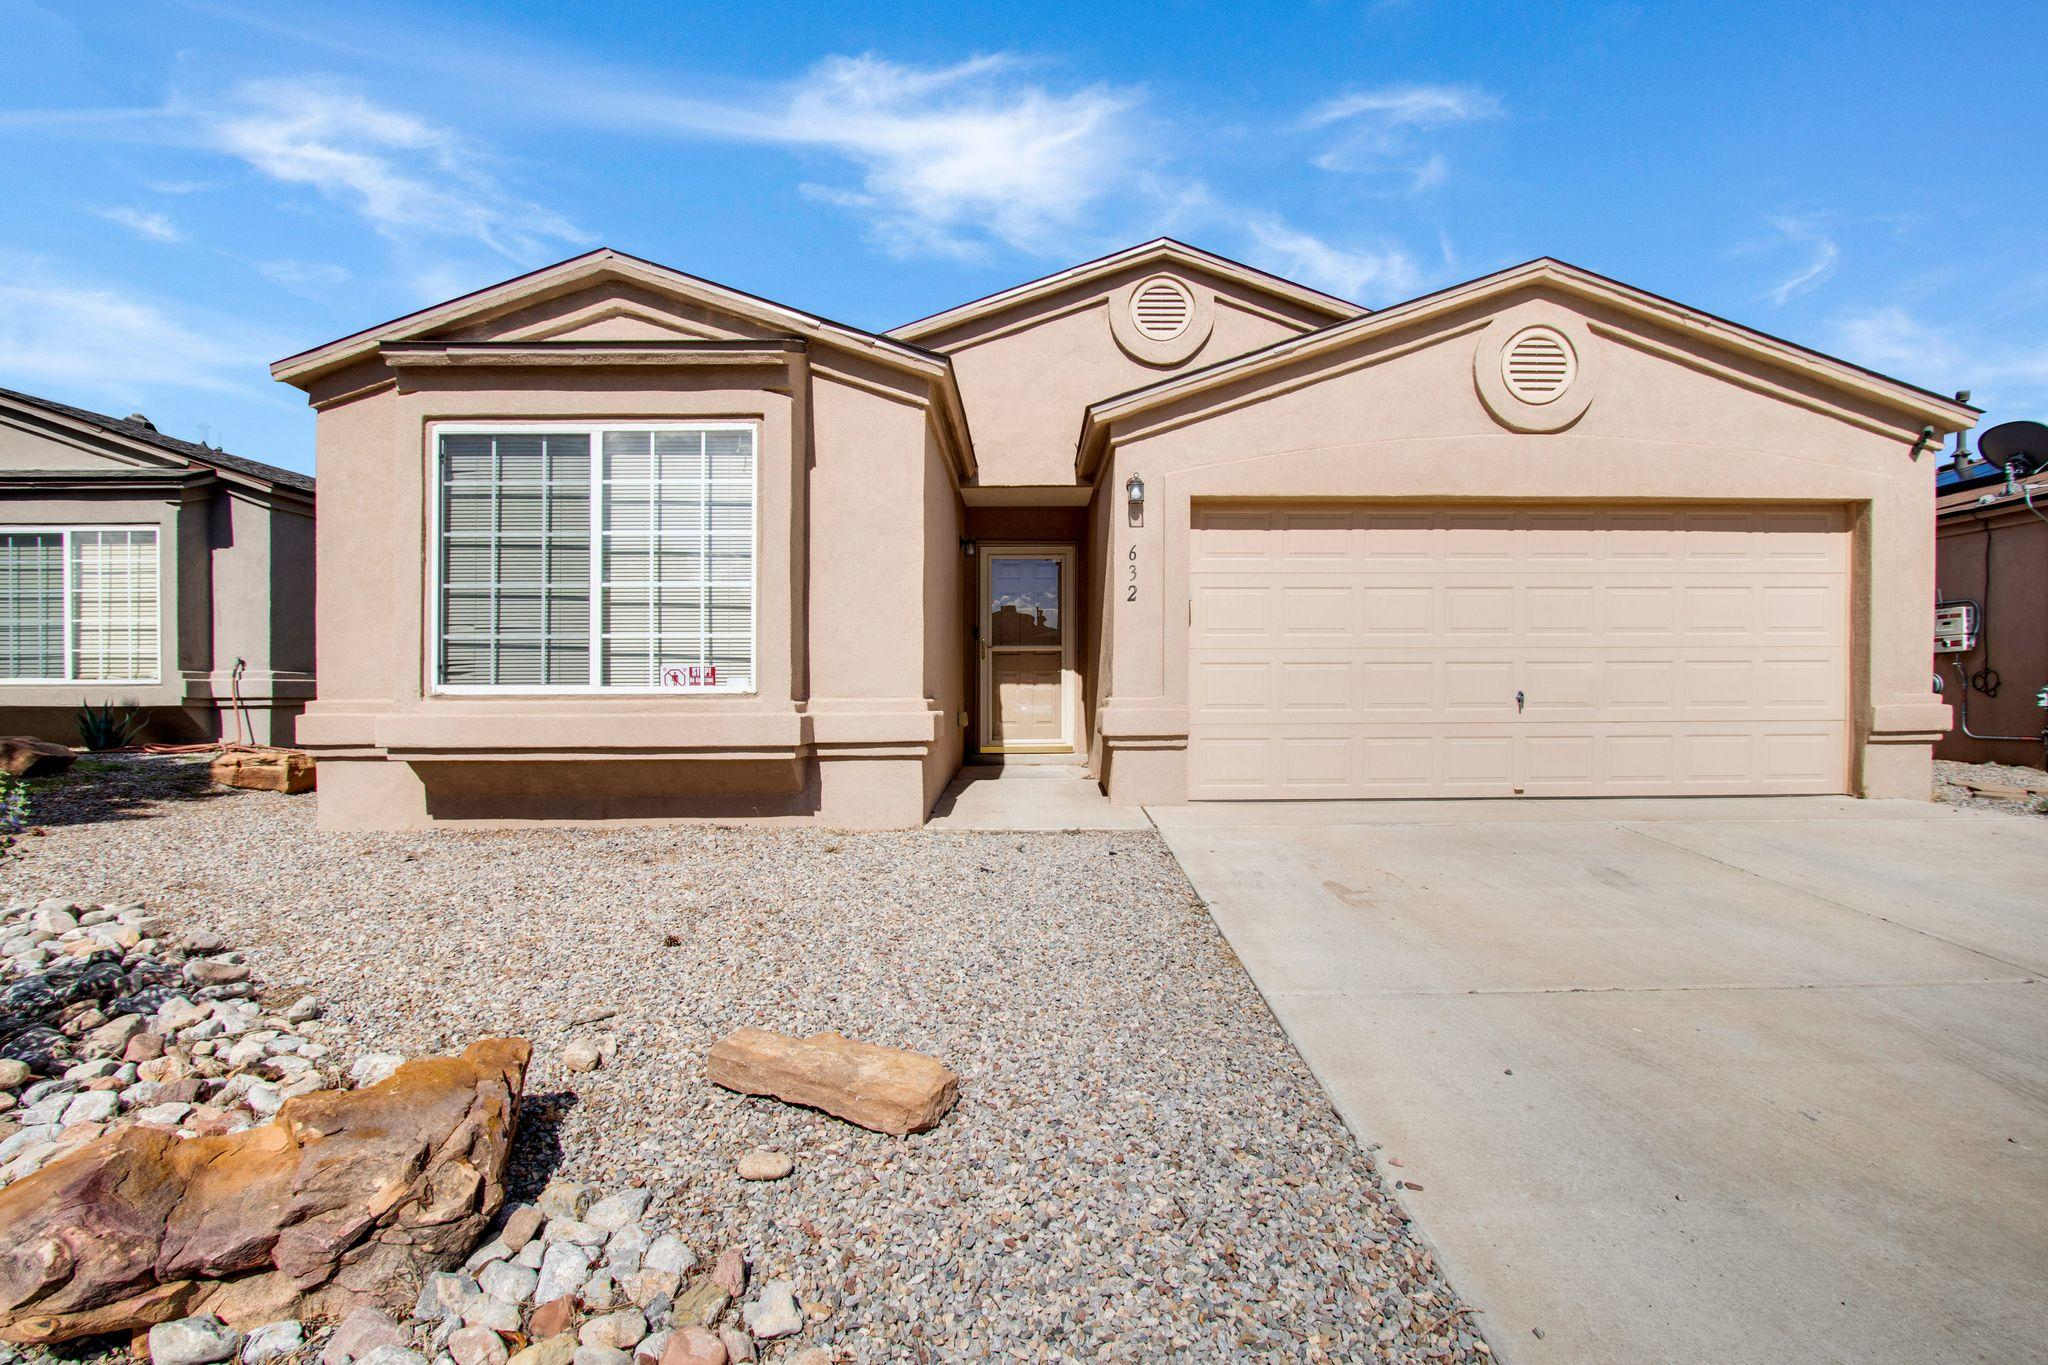 ***This move-in-ready home has easy access to the freeway, REFRIGERATED AIR and an almost maintenance free back yard! Did we mention this home has SOLAR PANELS powering the home! Ask us to see the electric bill, you will be amazed with how much you'll save! At this price you will want to HURRY!!! SUCH A GREAT HOME -- IN THIS HOT MARKET -- WONT LAST LONG!!! ***